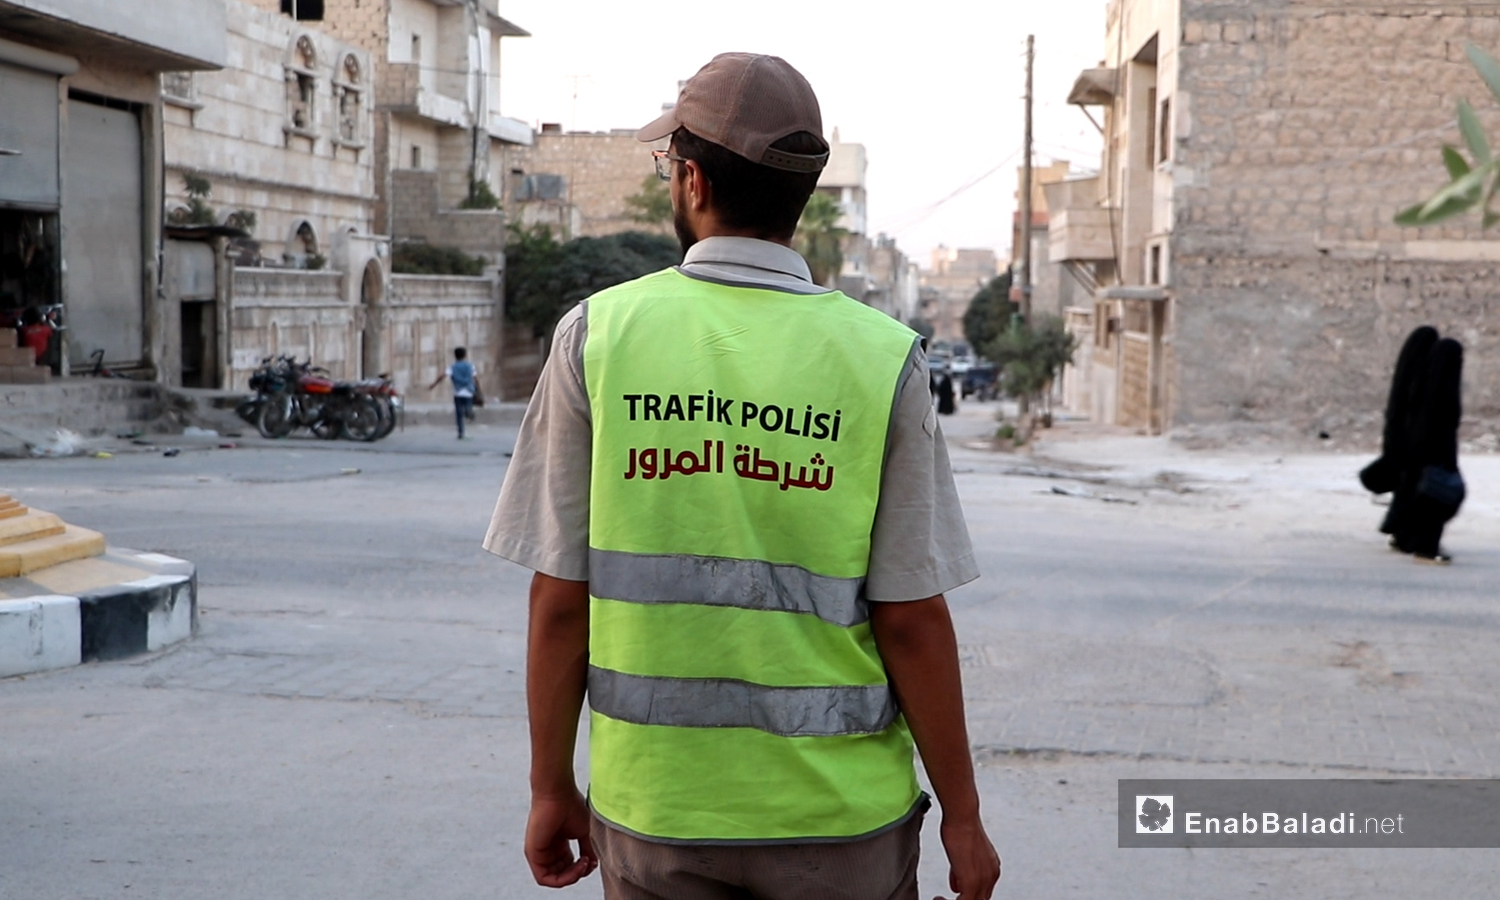 A traffic policeman in the city of al-Bab in the countryside of Aleppo - September 2020 (Enab Baladi)